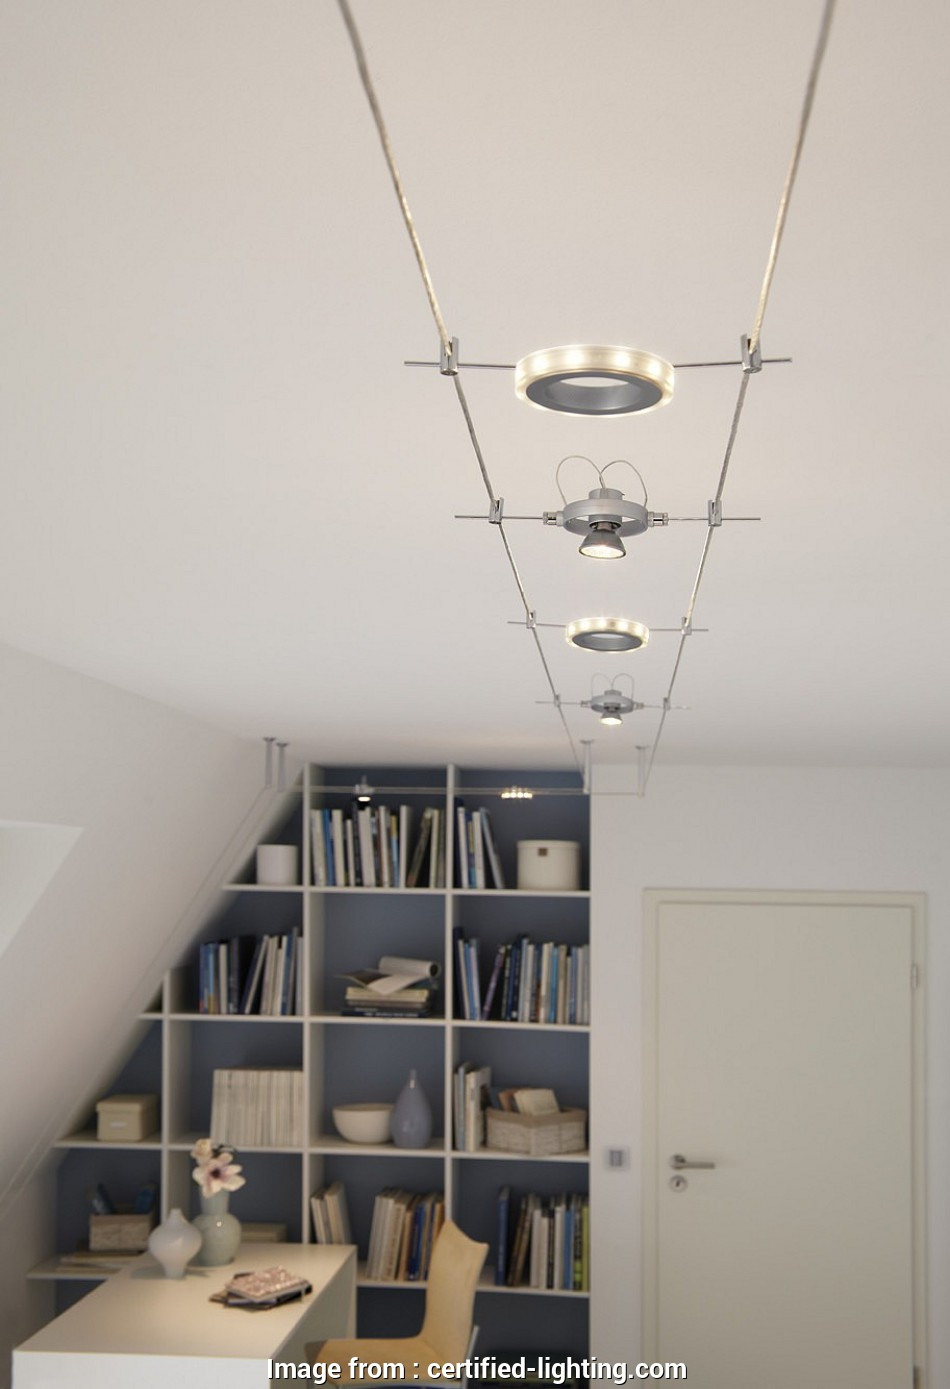 how does wire track lighting work How To Configure A Track Lighting System 8 Nice How Does Wire Track Lighting Work Photos